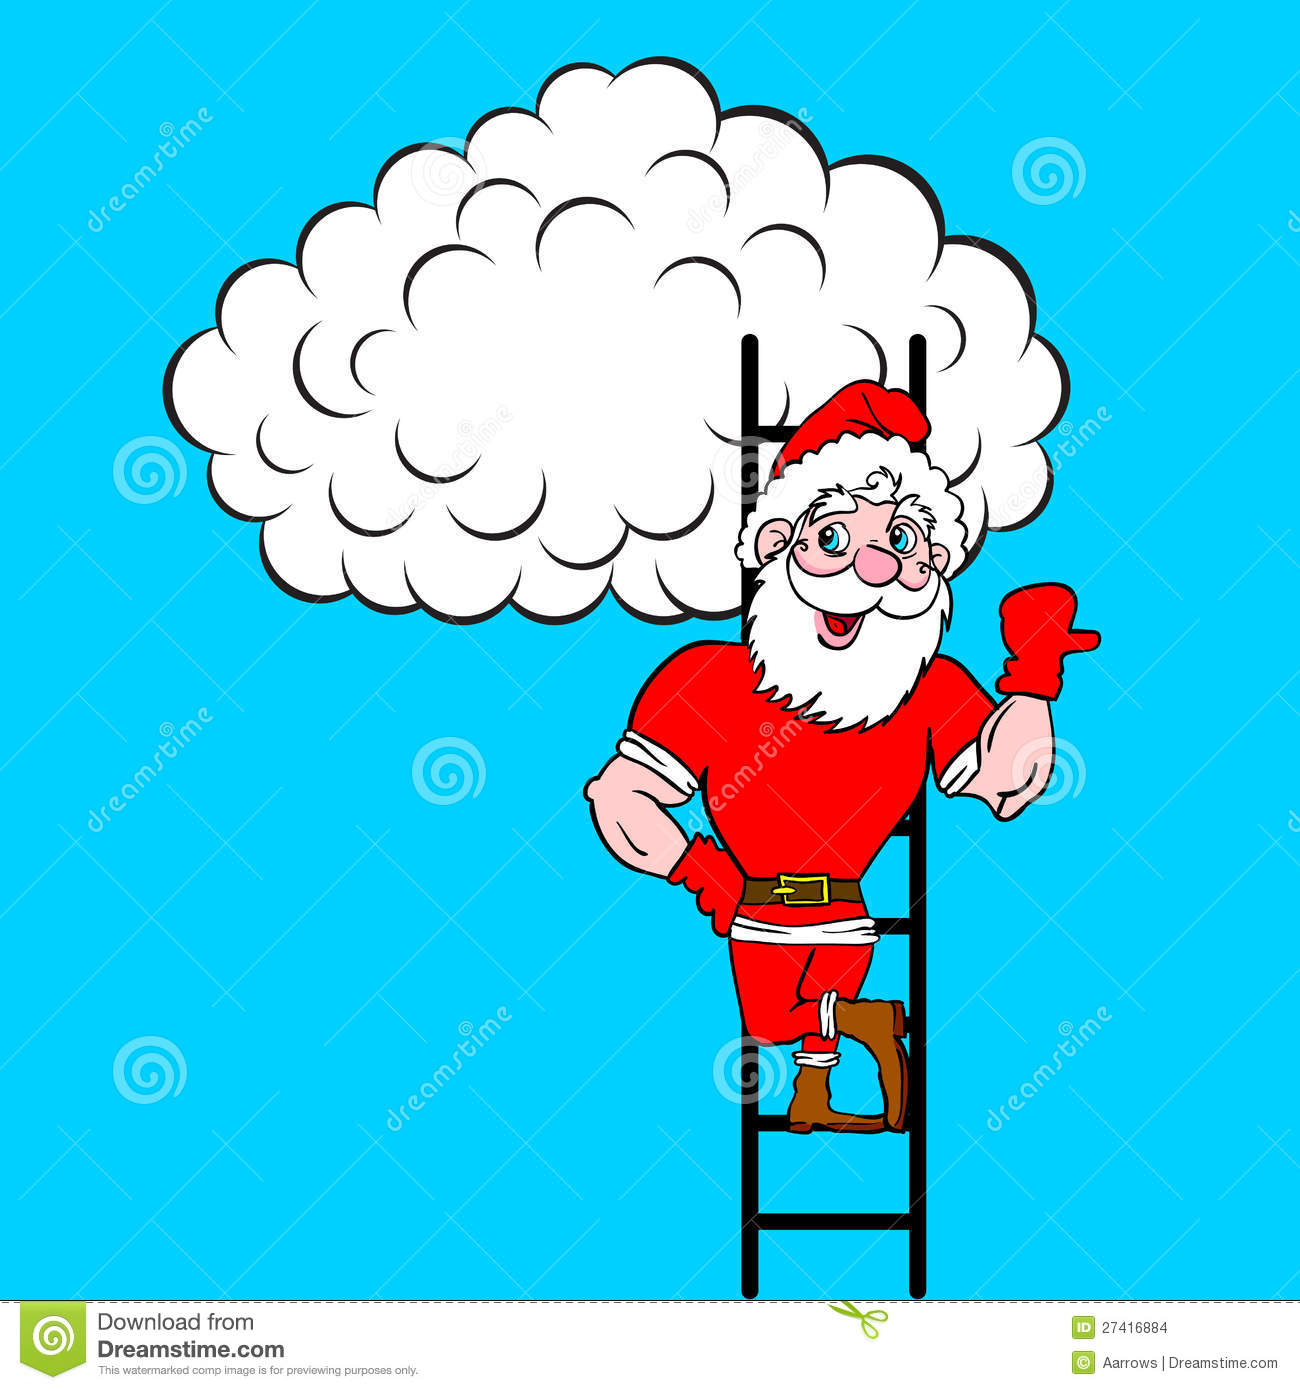 Santa claus coming up the stairs to cloud vector illustration